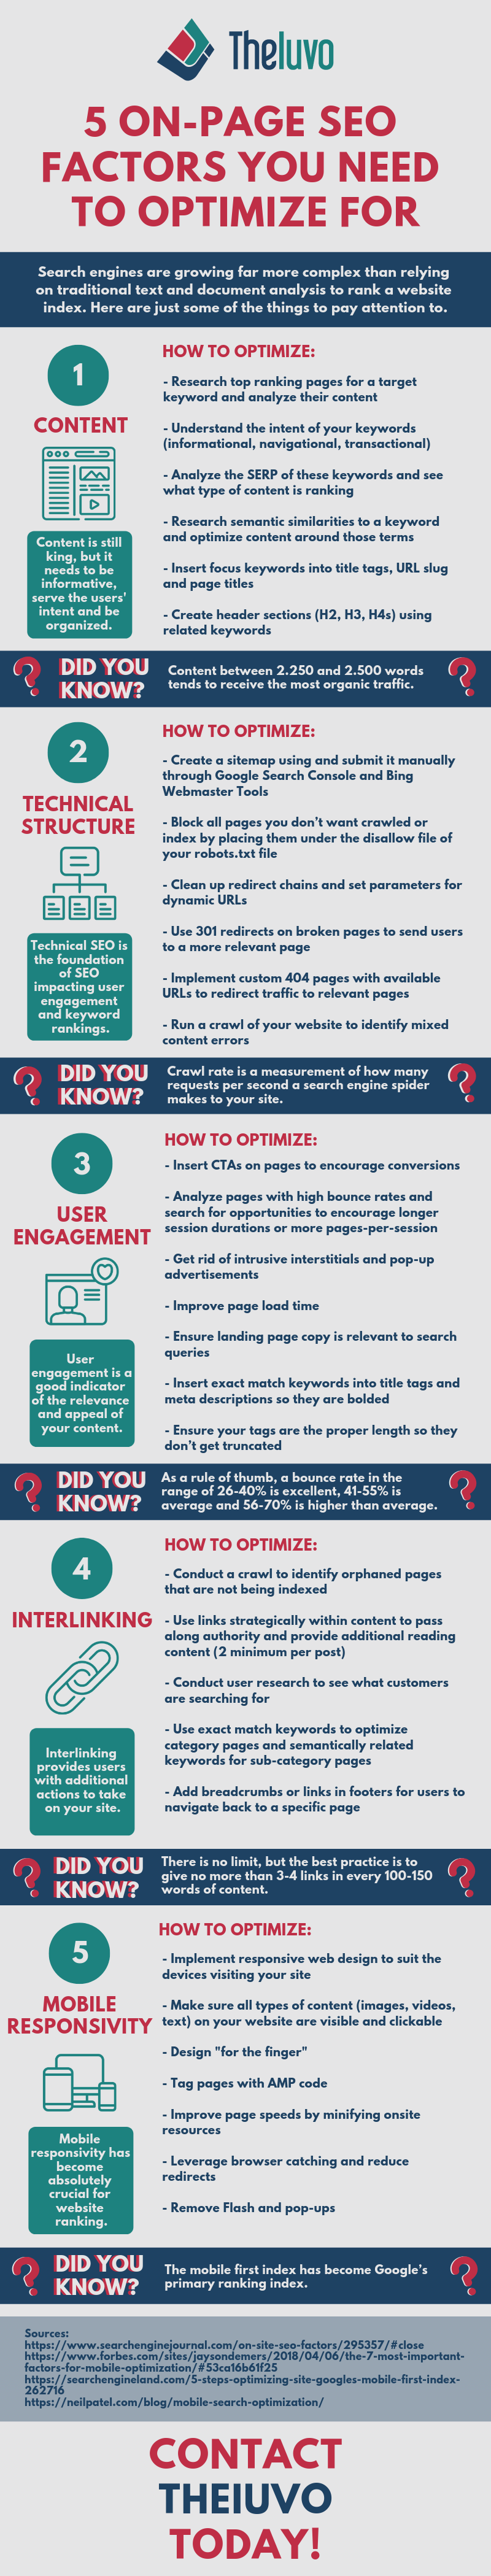 5 On Page SEO Factors to Optimize for Infographic